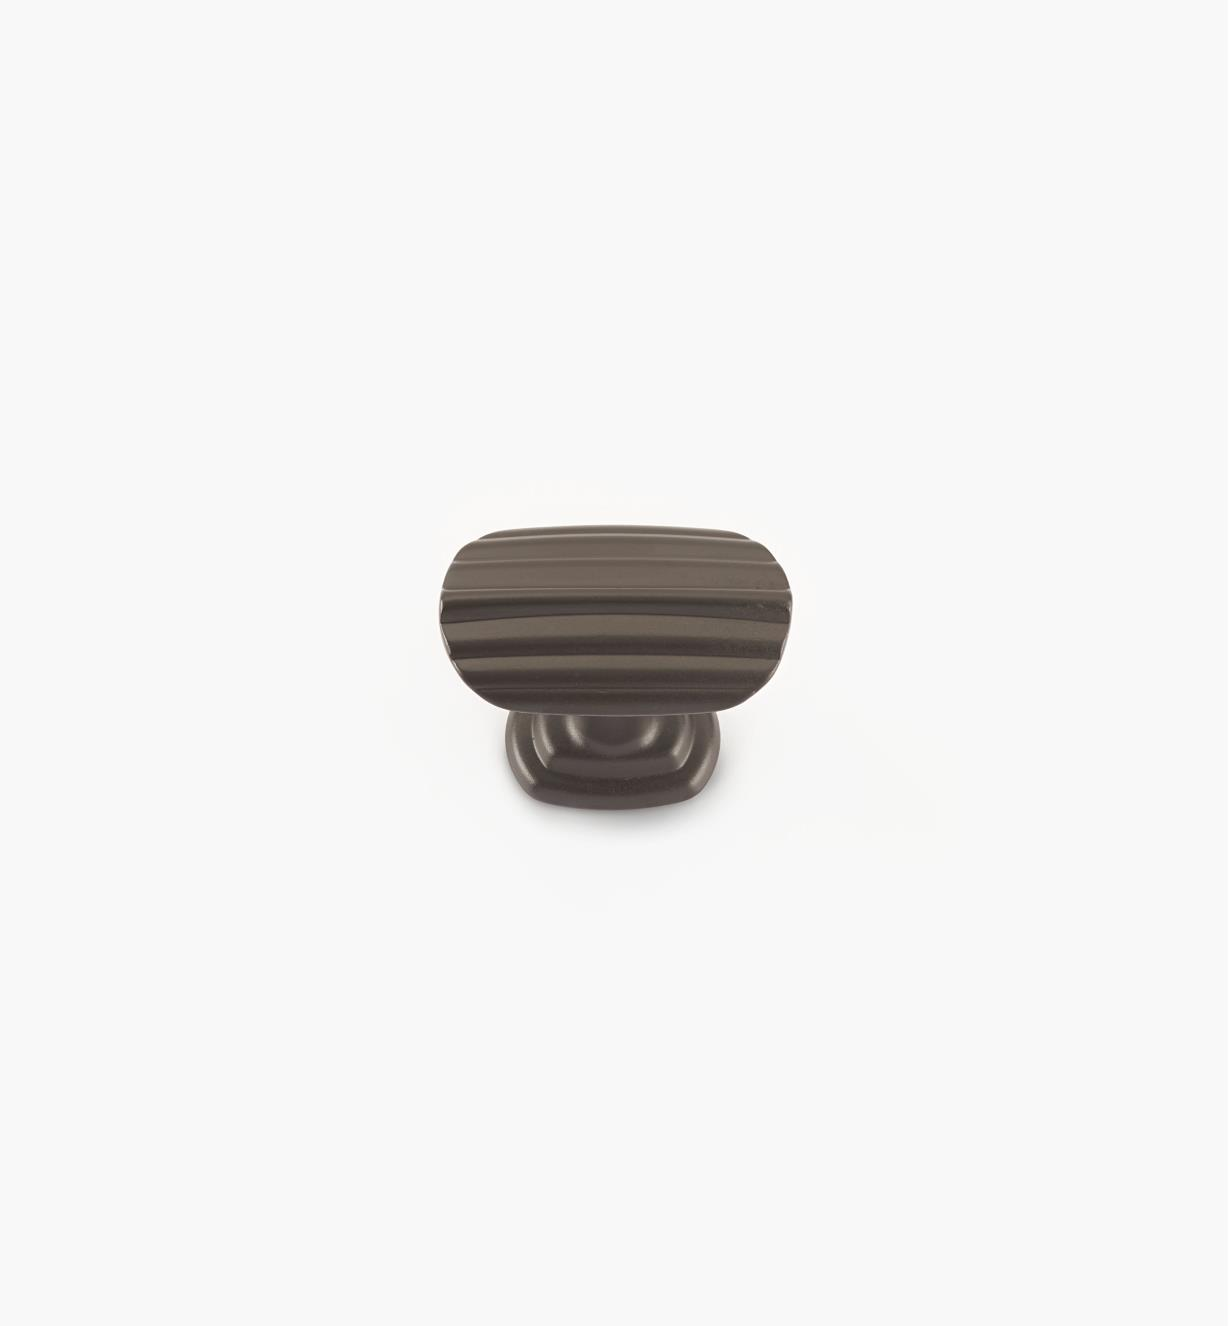 02W1730 - Tsou 38mm x 24mm Oil-Rubbed Bronze Knob